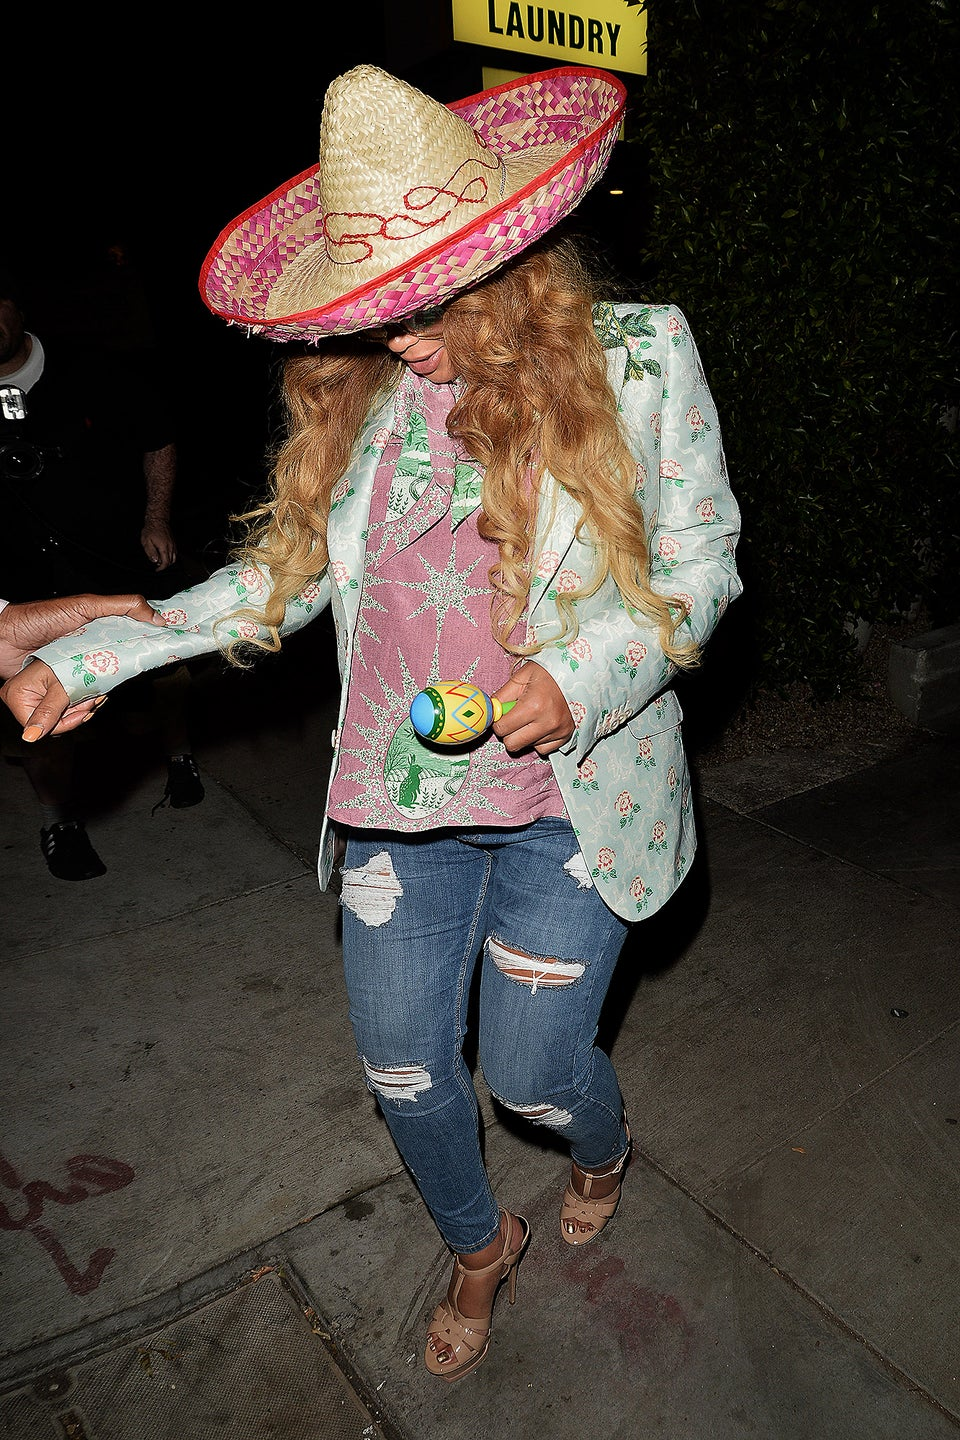 Beyoncé and Kelly Rowland Celebrate Cinco de Mayo with Vegan Mexican Food and Festive Sombreros